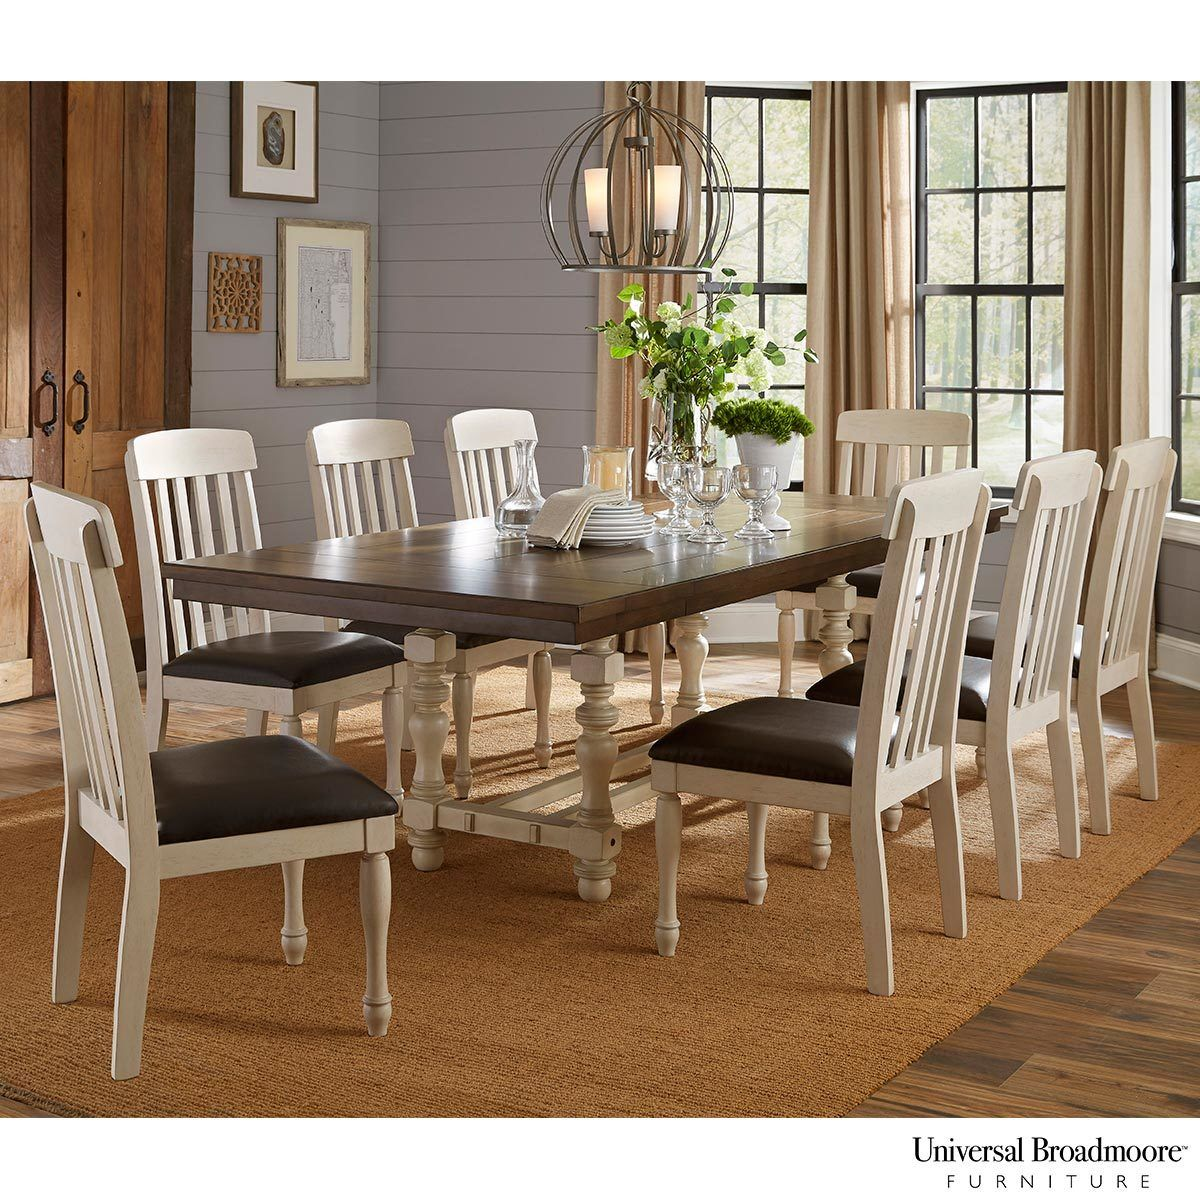 Universal Broadmoore Extending Dining Room Table 8 Chairs Costco Uk Dining Room Design Dining Room Sets Unique Dining Room